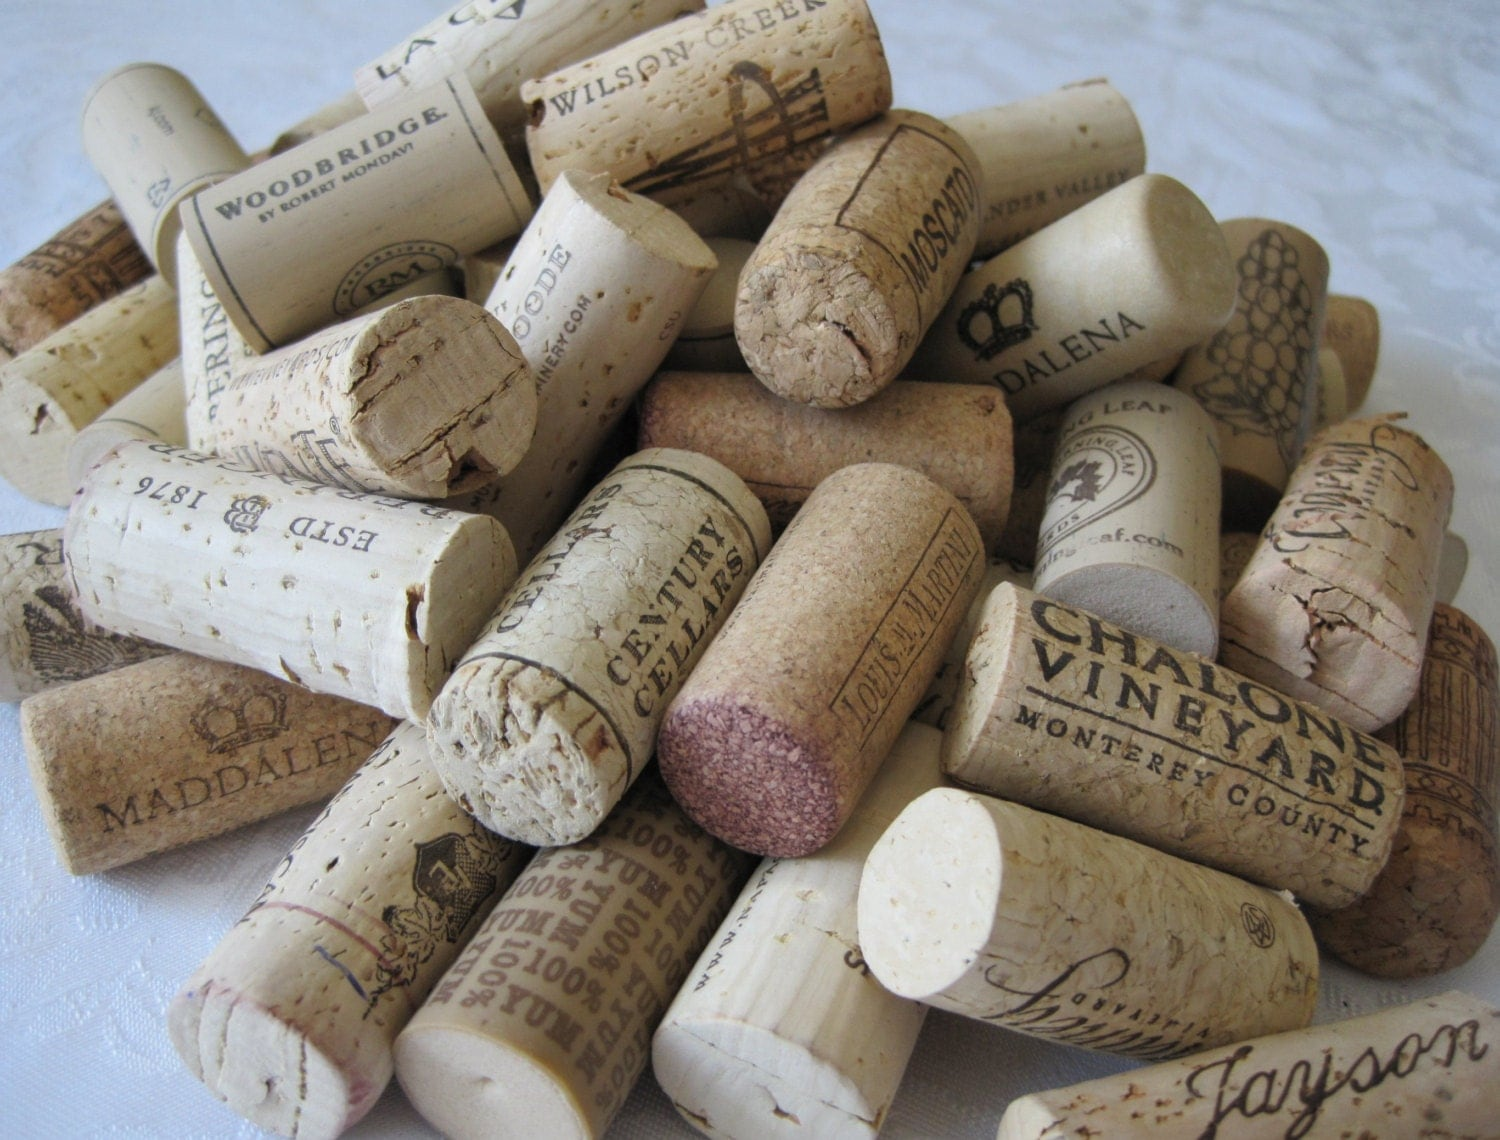 100 wine corks used wine corks all natural corks recycled for Natural corks